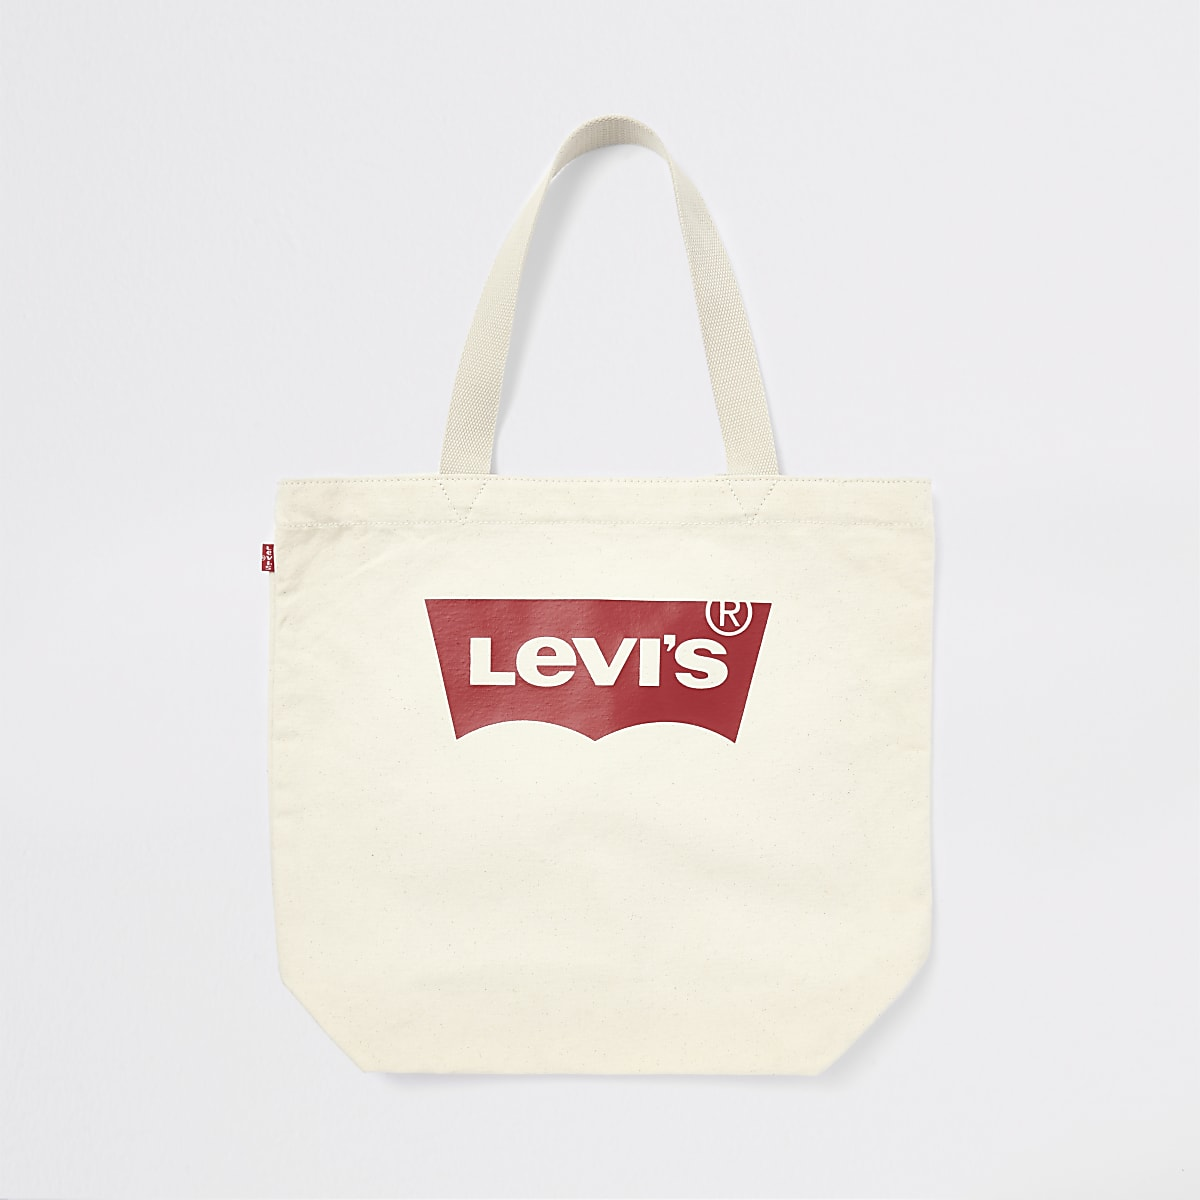 c9ed1541785 Levi s ecru tote bag - Shopper Bags - Bags - men